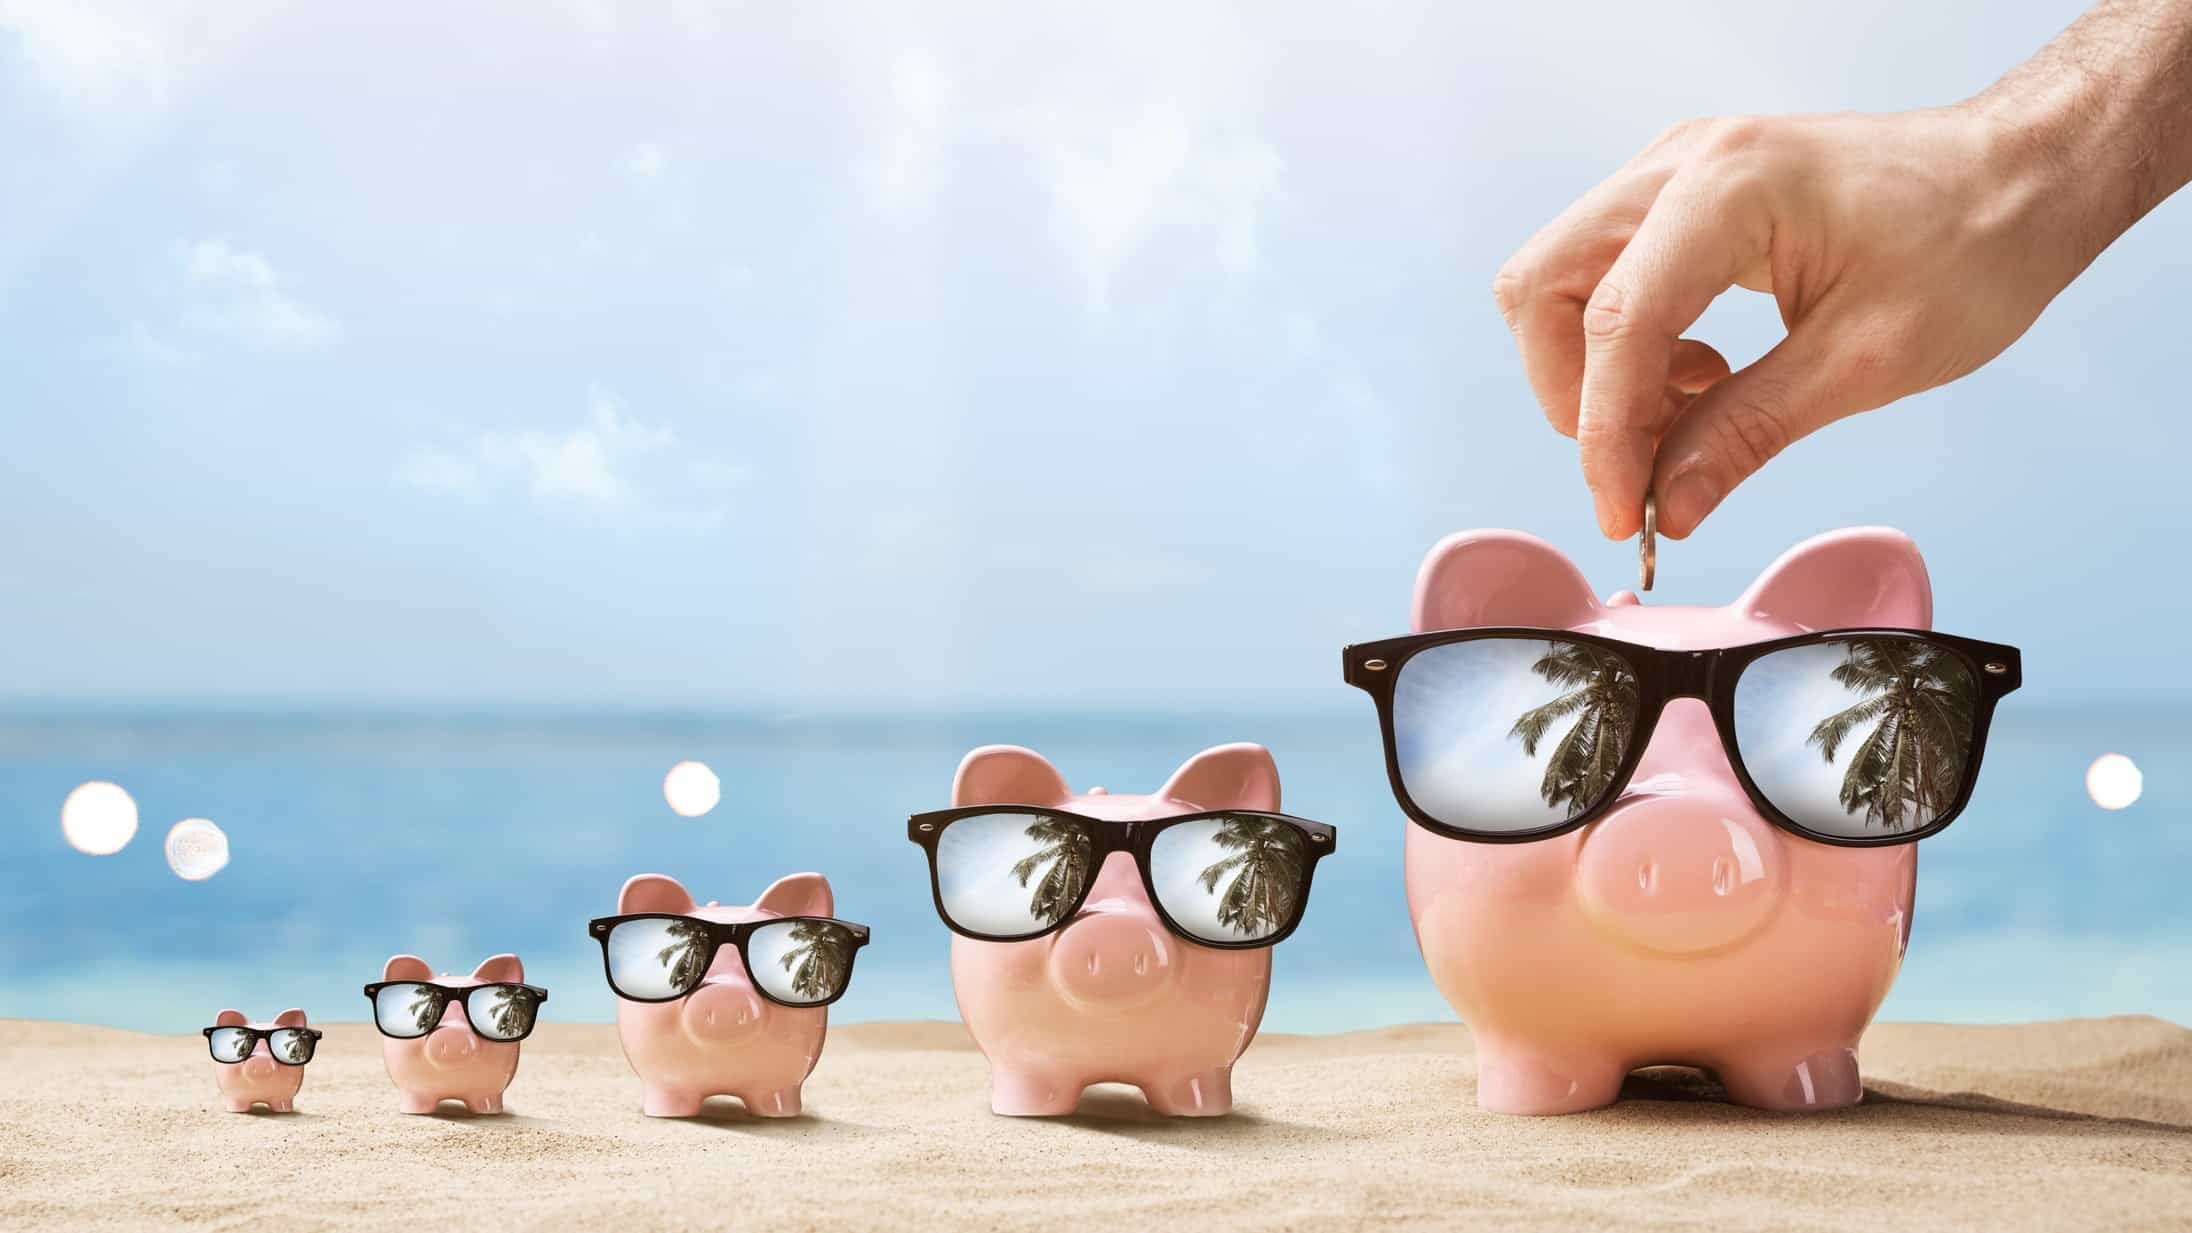 using asx shares to retire represented by piggy bank on sunny beach